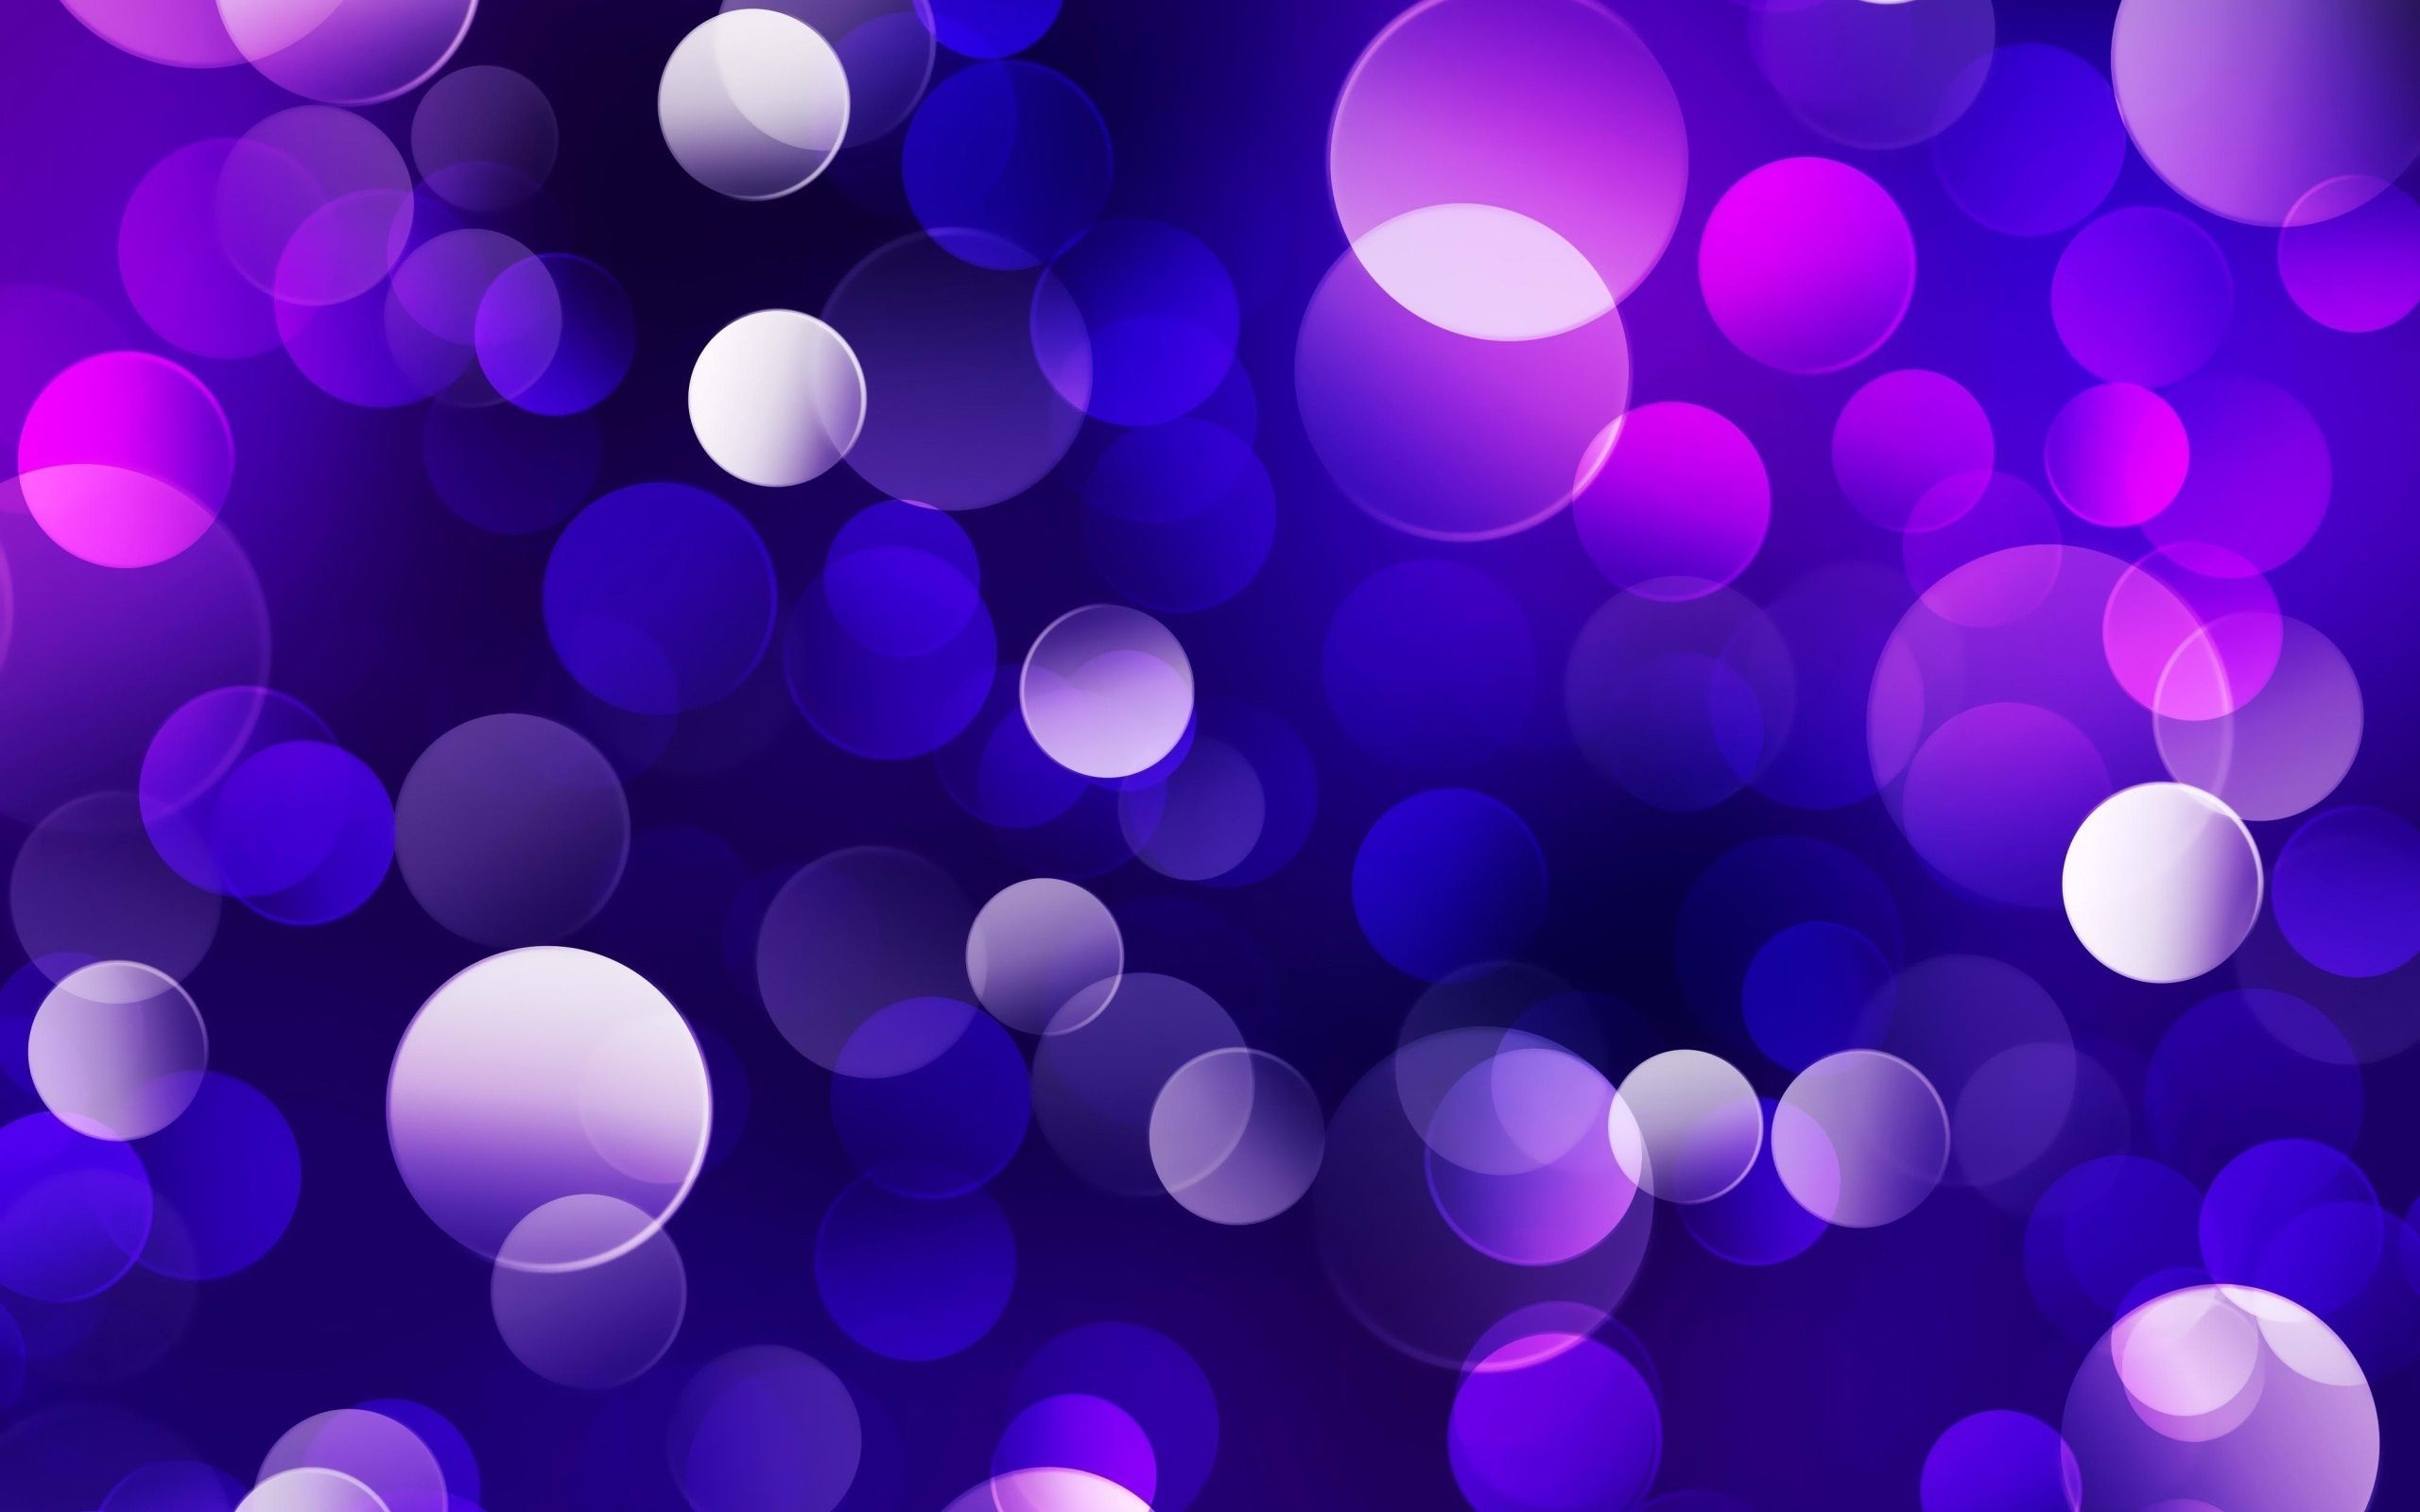 abstract wallpaper girly purple wallpapers picture with hd